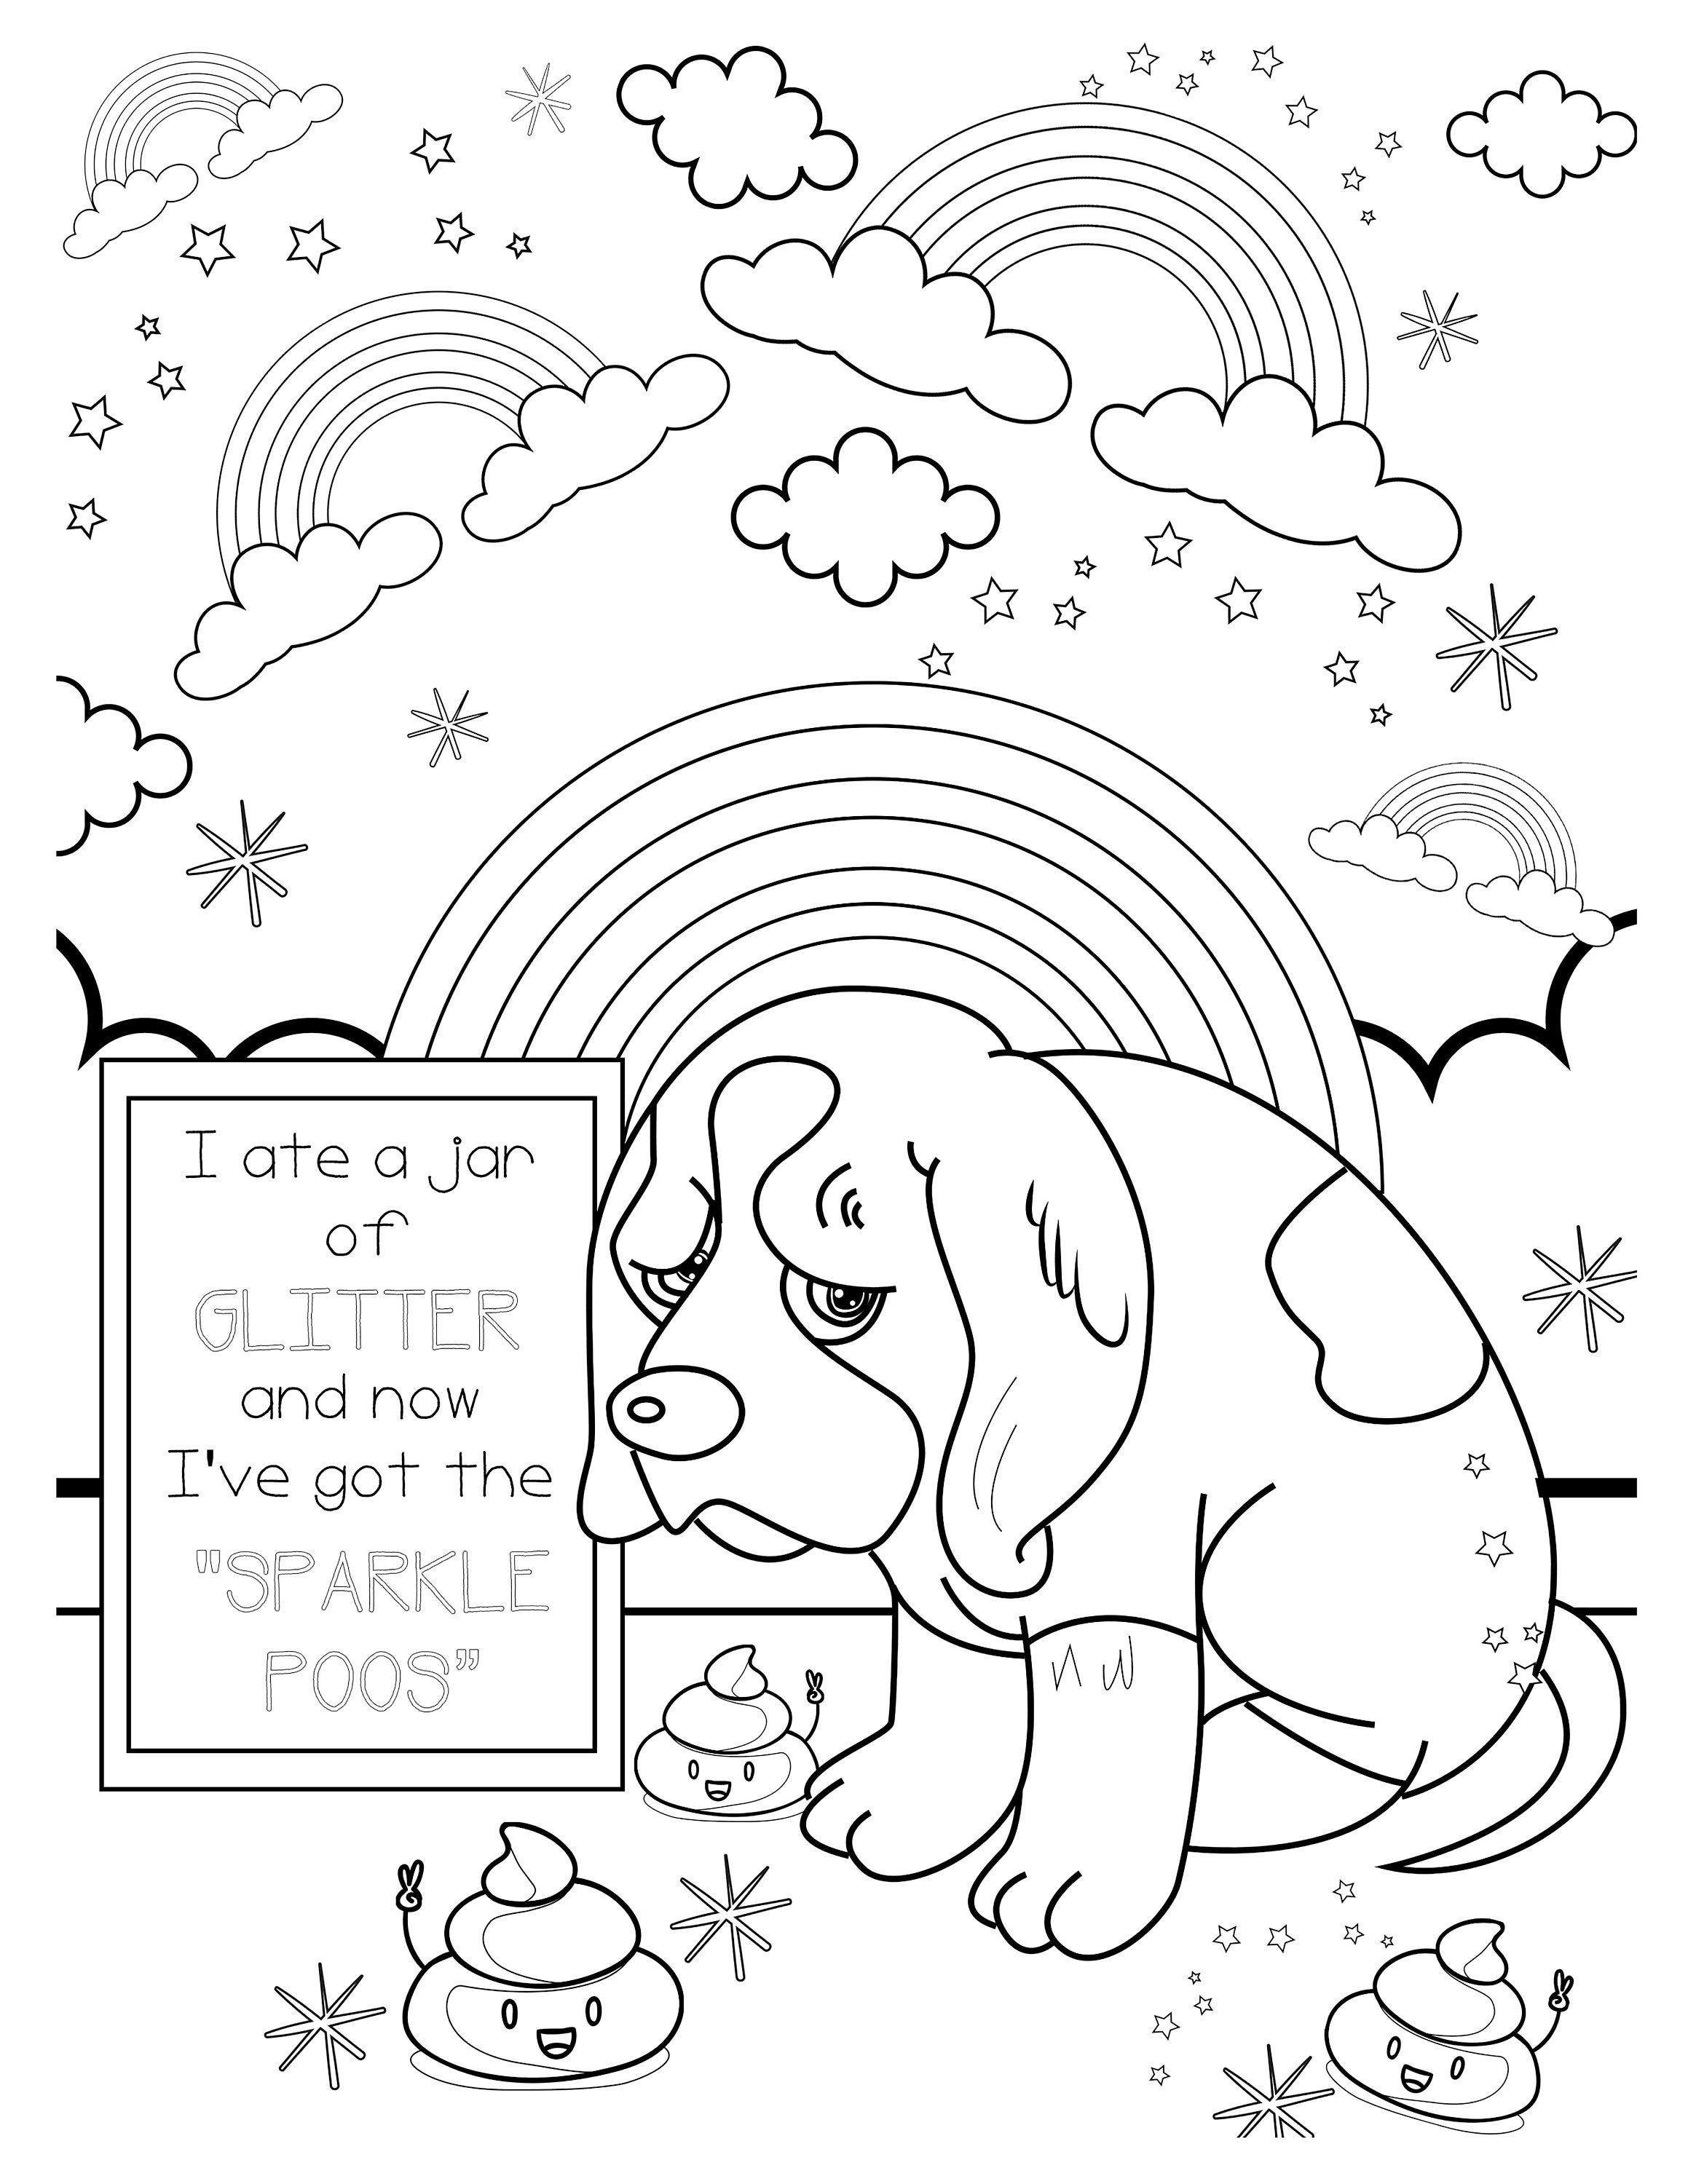 Precious Puppy Glitter Sparkle Coloring Page Printable Coloring